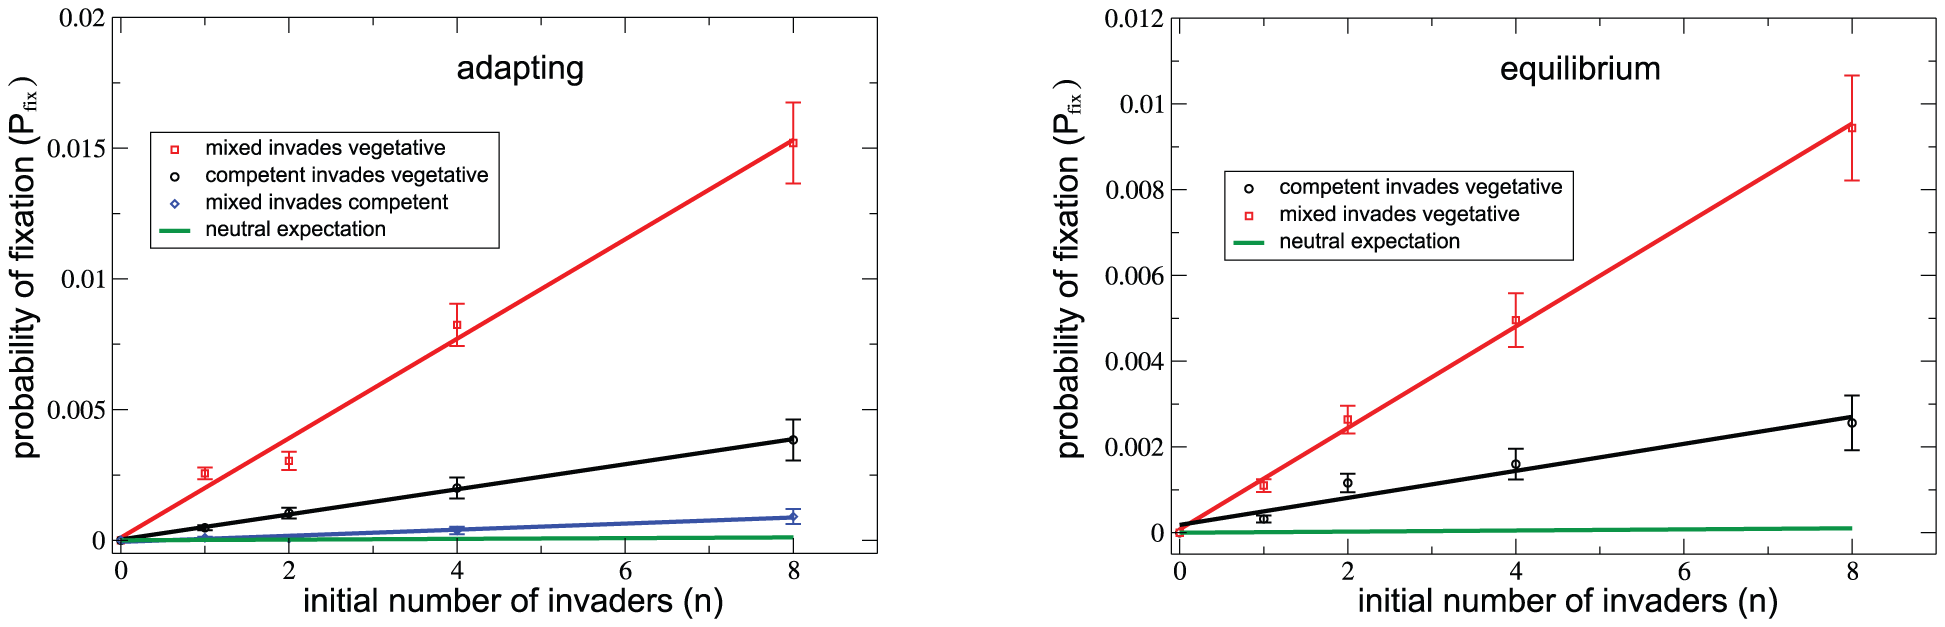 Mixed populations are competitively superior to purely competent ones, both during adaptation (left) and at mutation/selection/drift equilibrium (right).